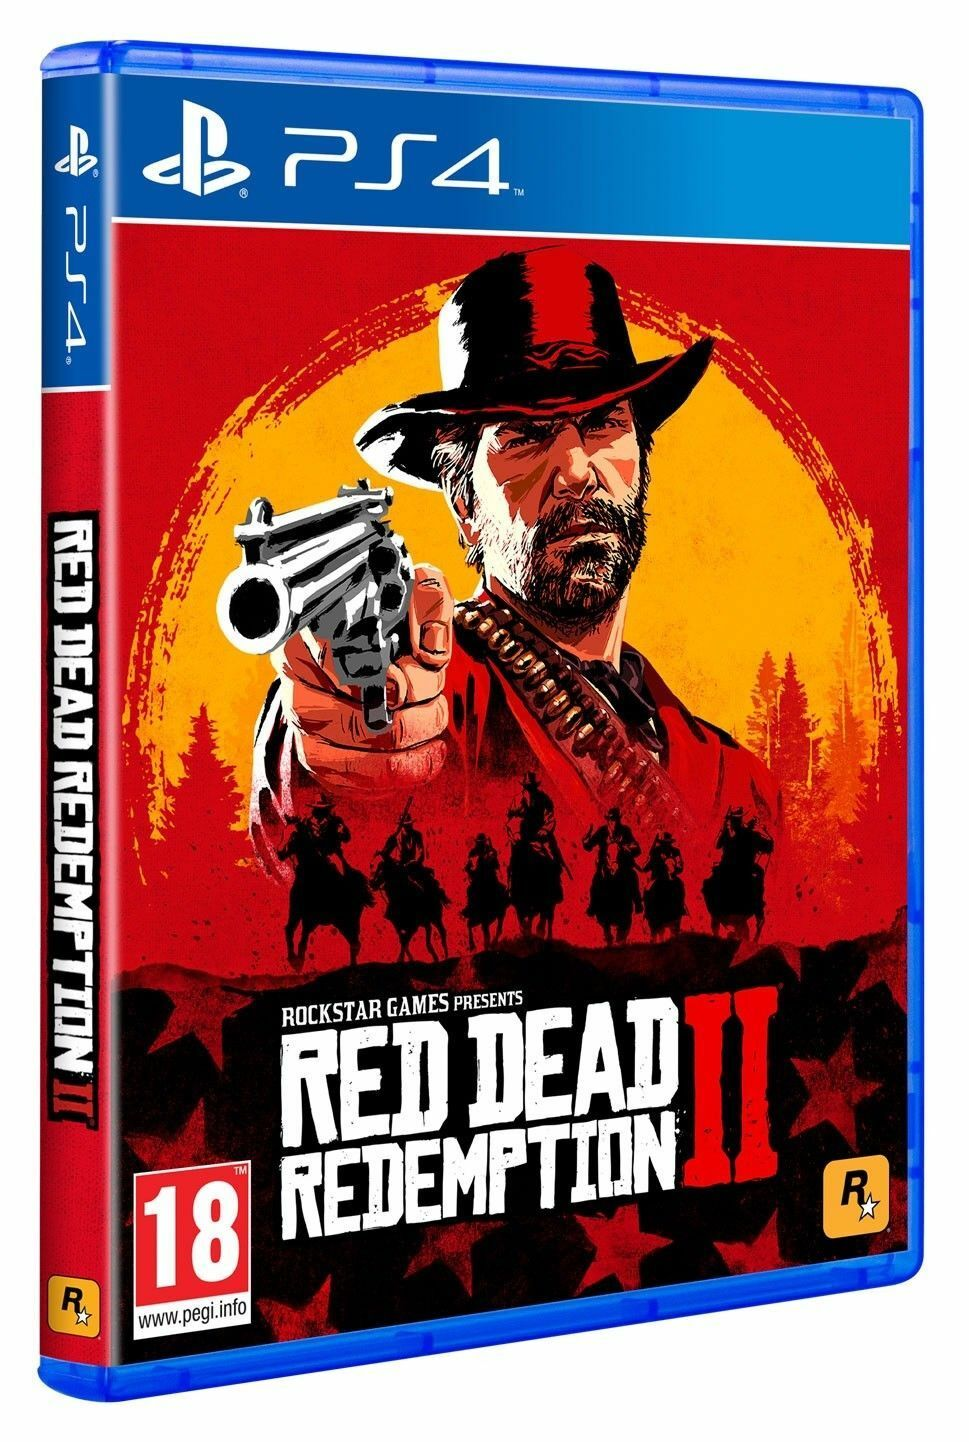 RED DEAD REDEMPTION 2 PS4 - PLAYSTATION 4 - GIOCO EUROPEO EU - OFFERTA